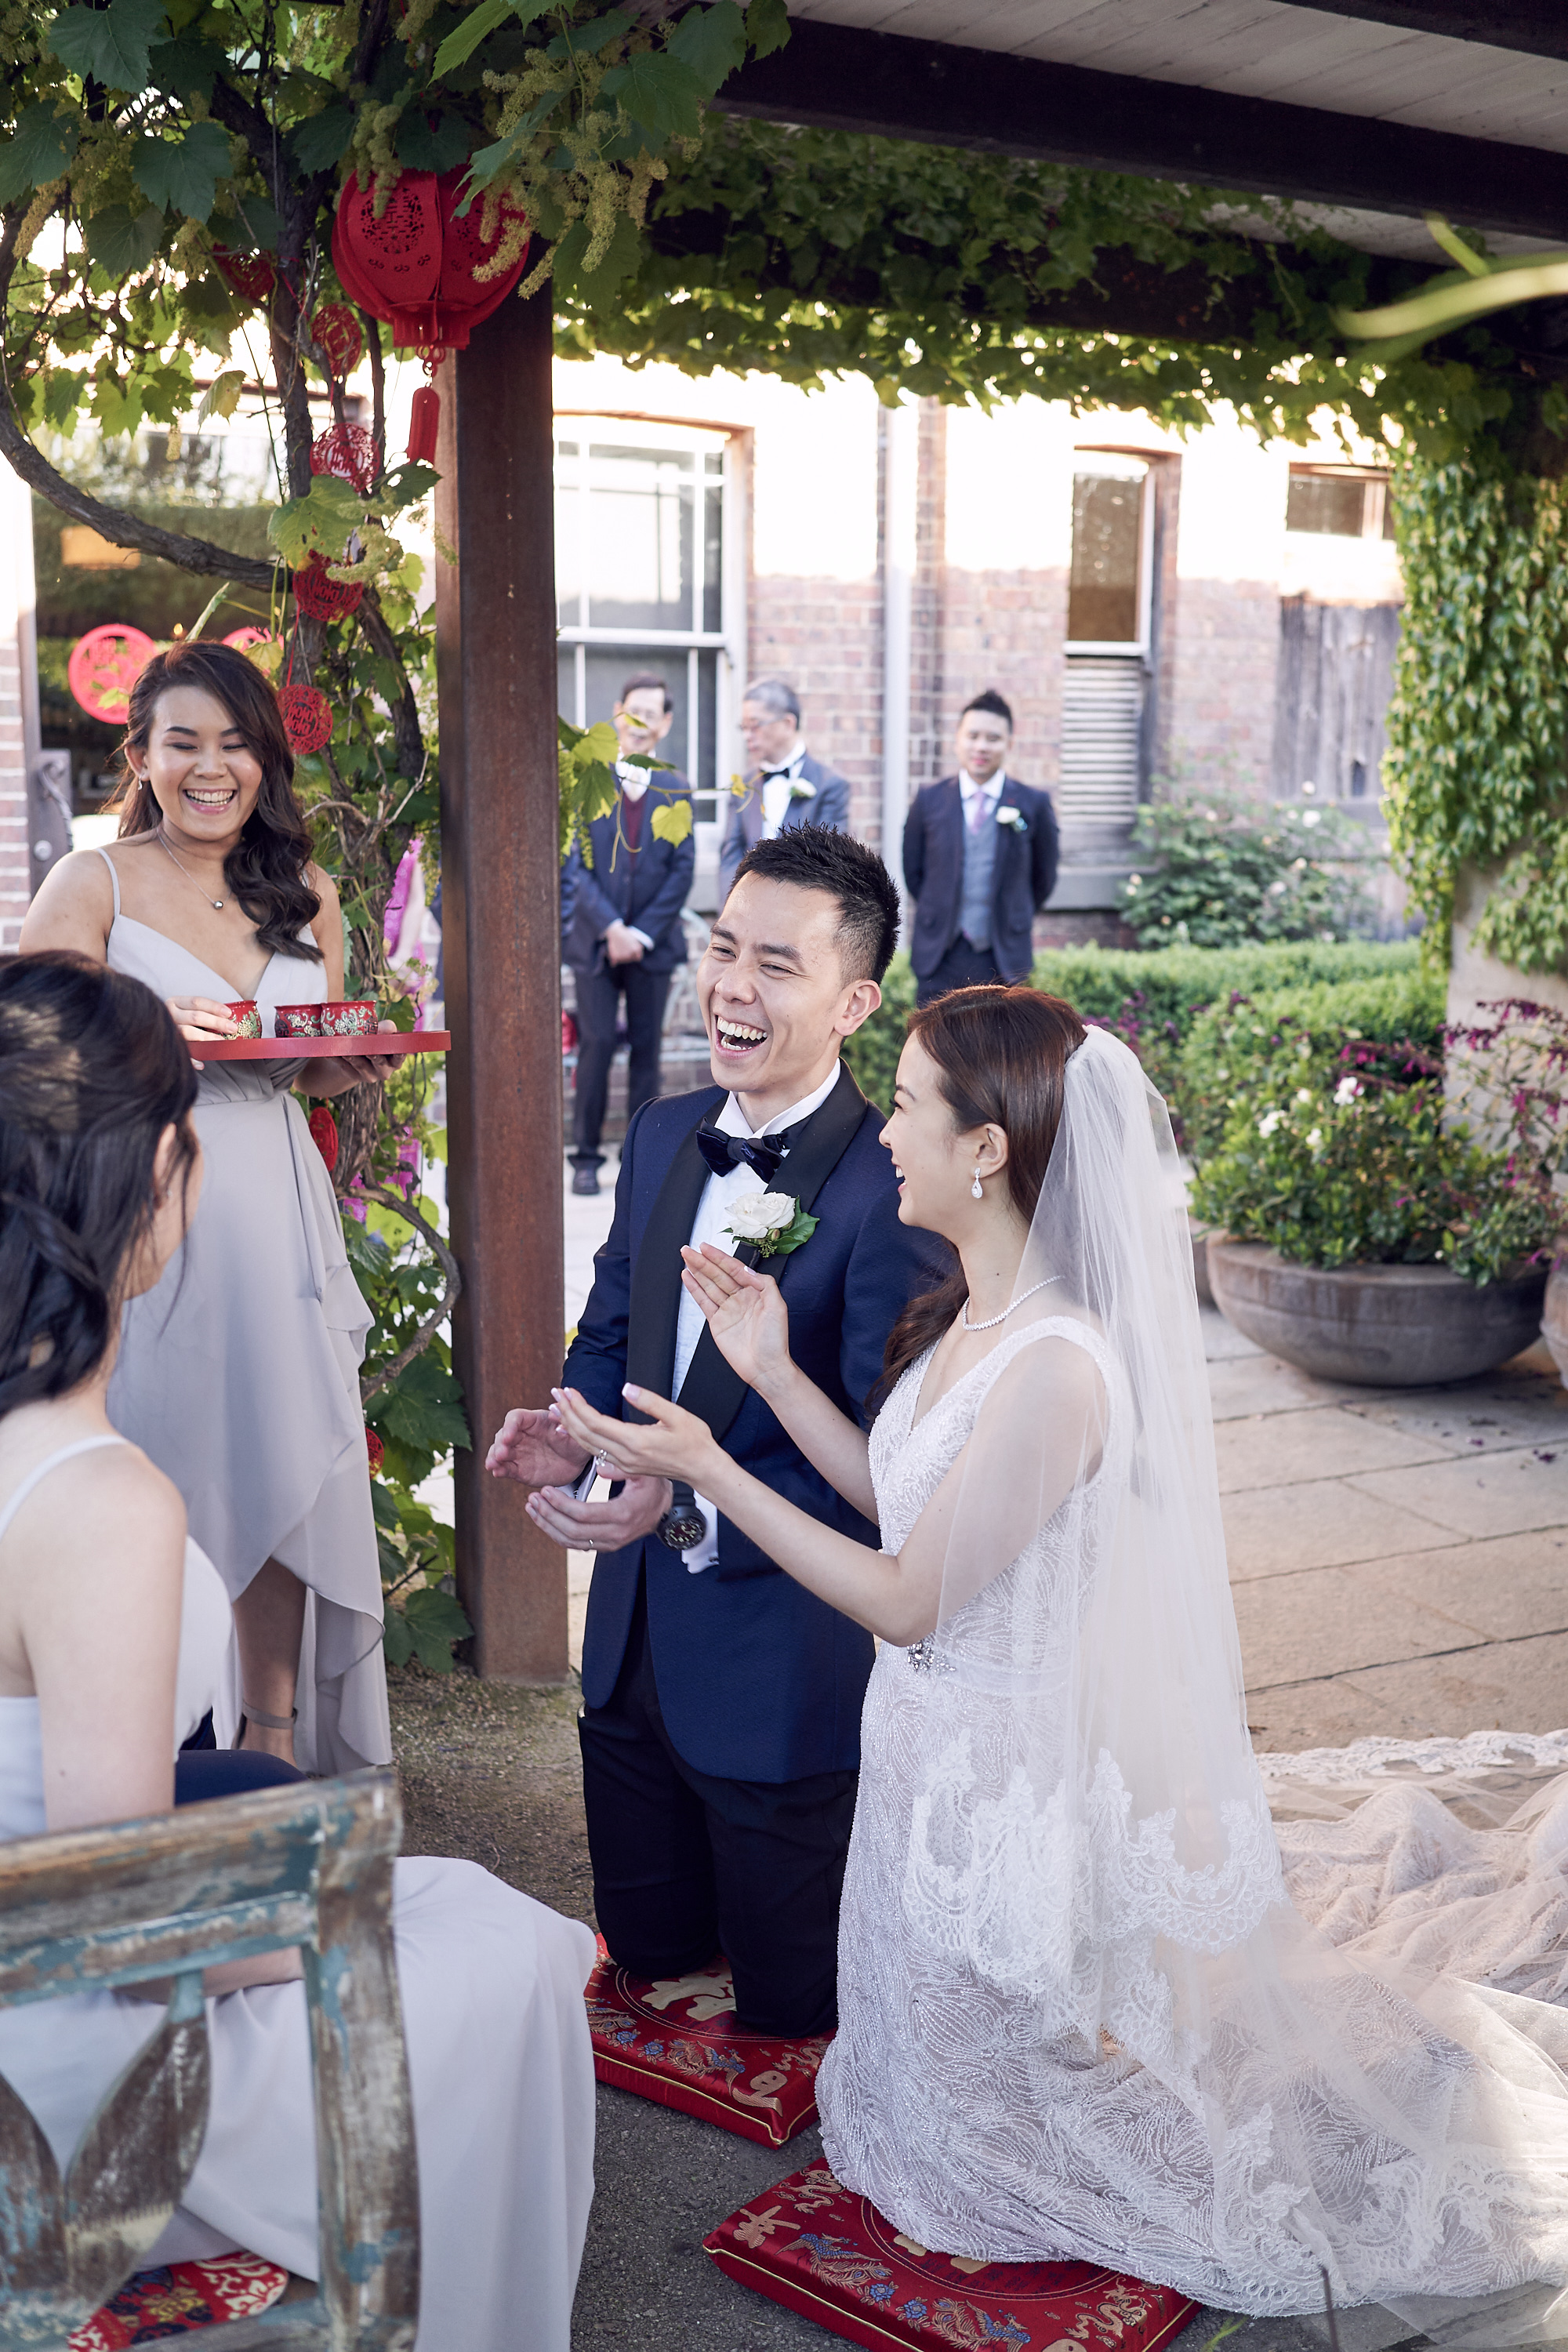 stones of the yarra valley Chinese Tea Ceremony by Lost In Love Photography